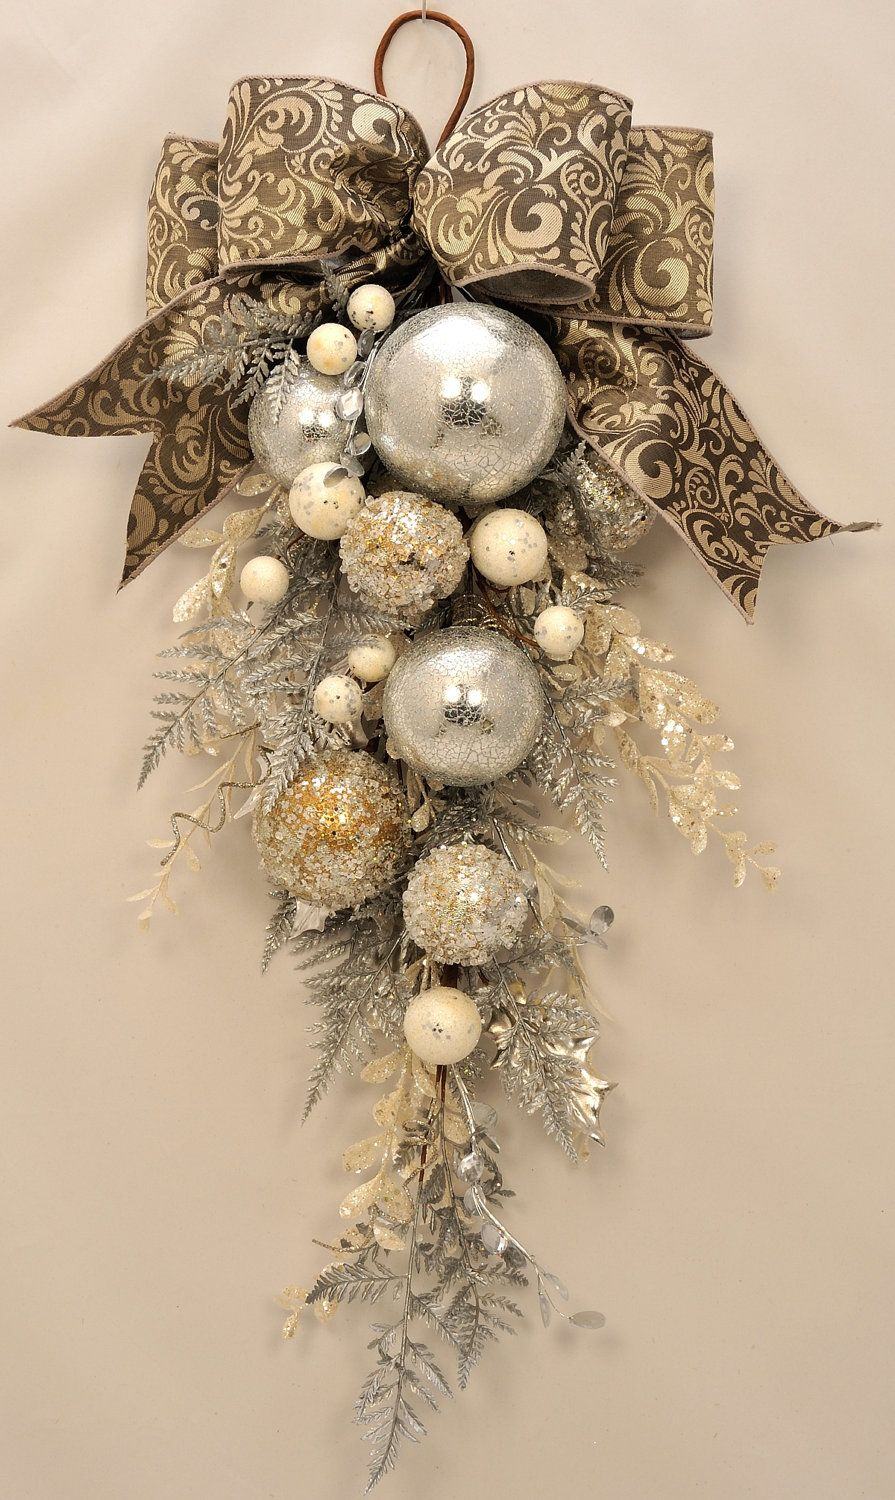 Elegant Christmas Stunning Ornament And Crystal Christmas Swag Holiday Swag Winter Swag Winter Wreath Christmas Wreath Silver Wreath Christmas Swags Christmas Wreaths Christmas Diy